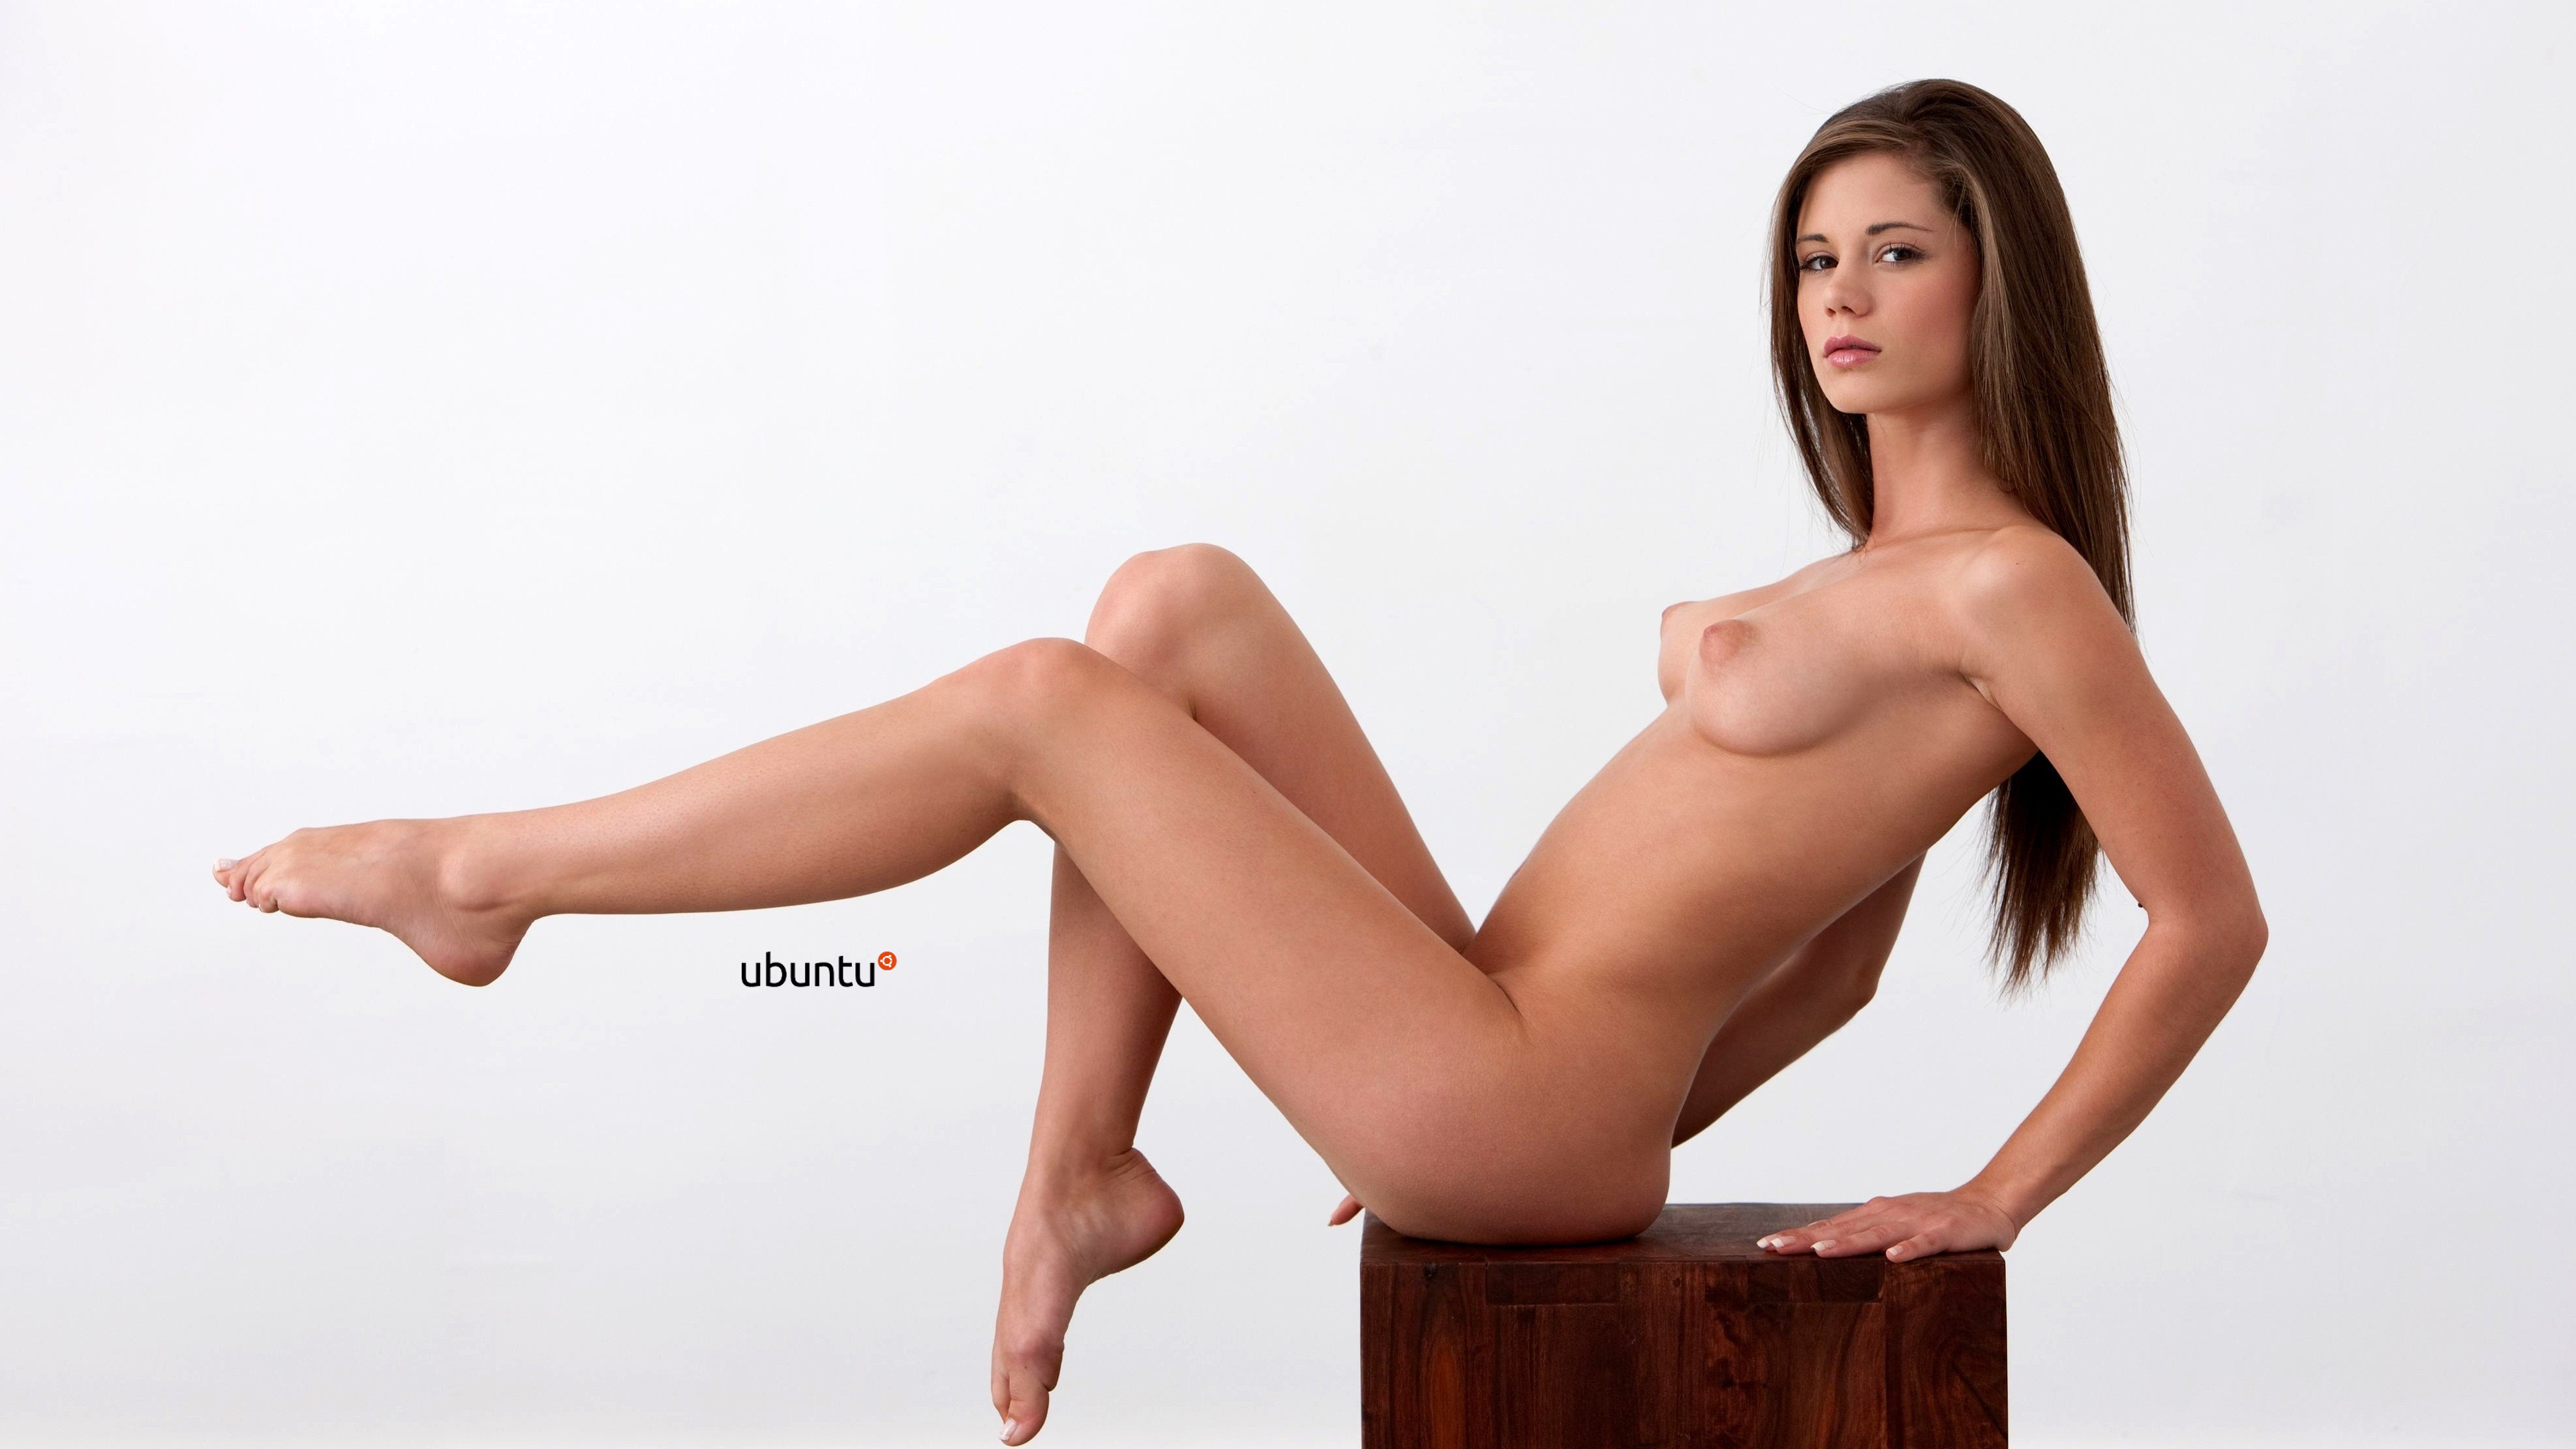 download photo 3949x2222, little caprice, caprice, brunette, puffy